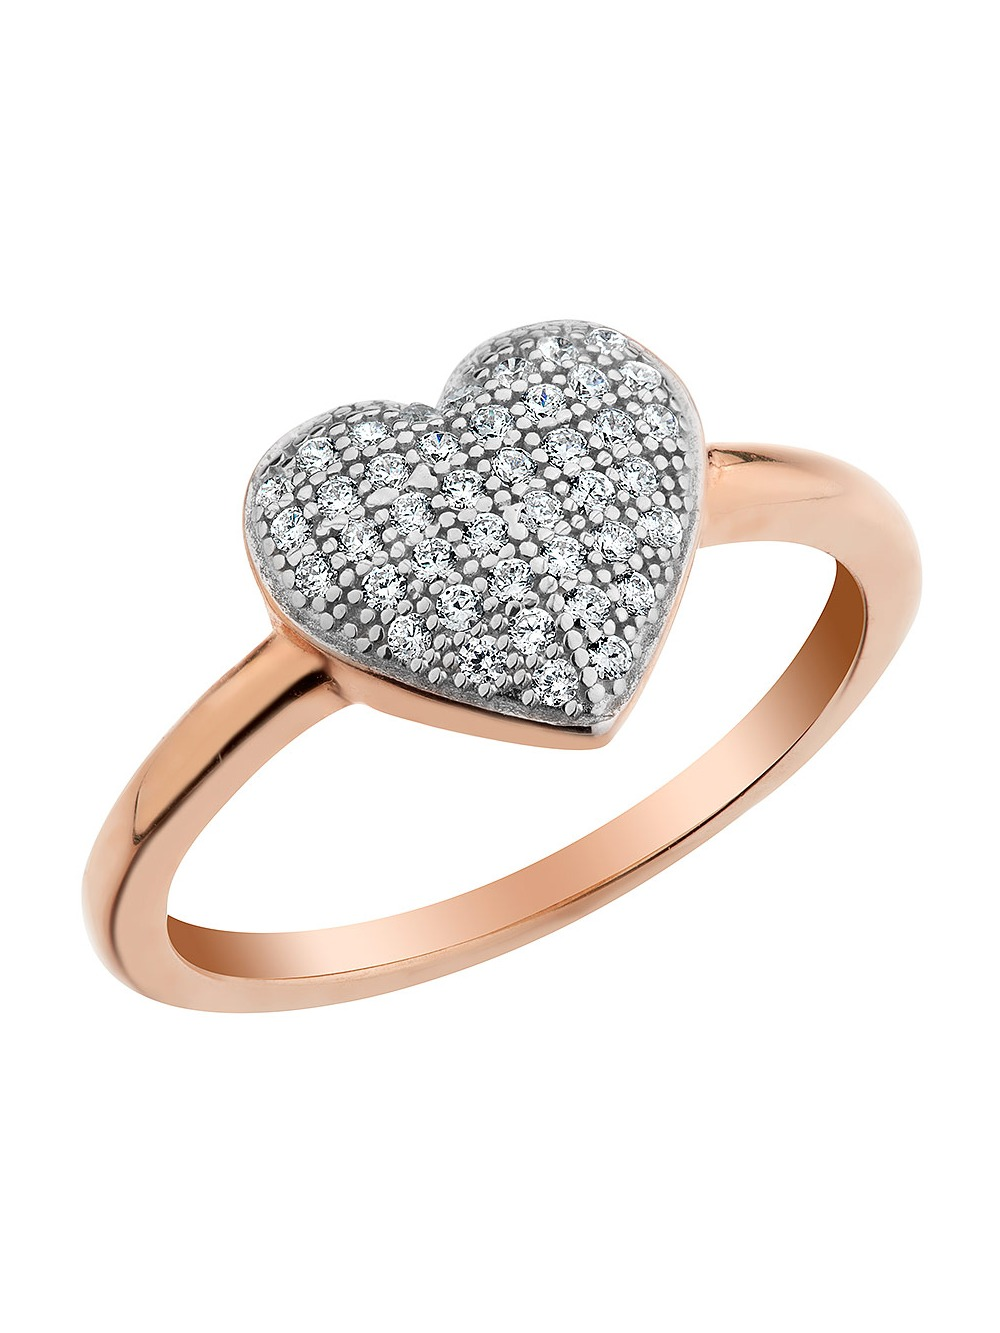 Simulated Crystal Heart Ring in Sterling Silver with Rose Gold Plating